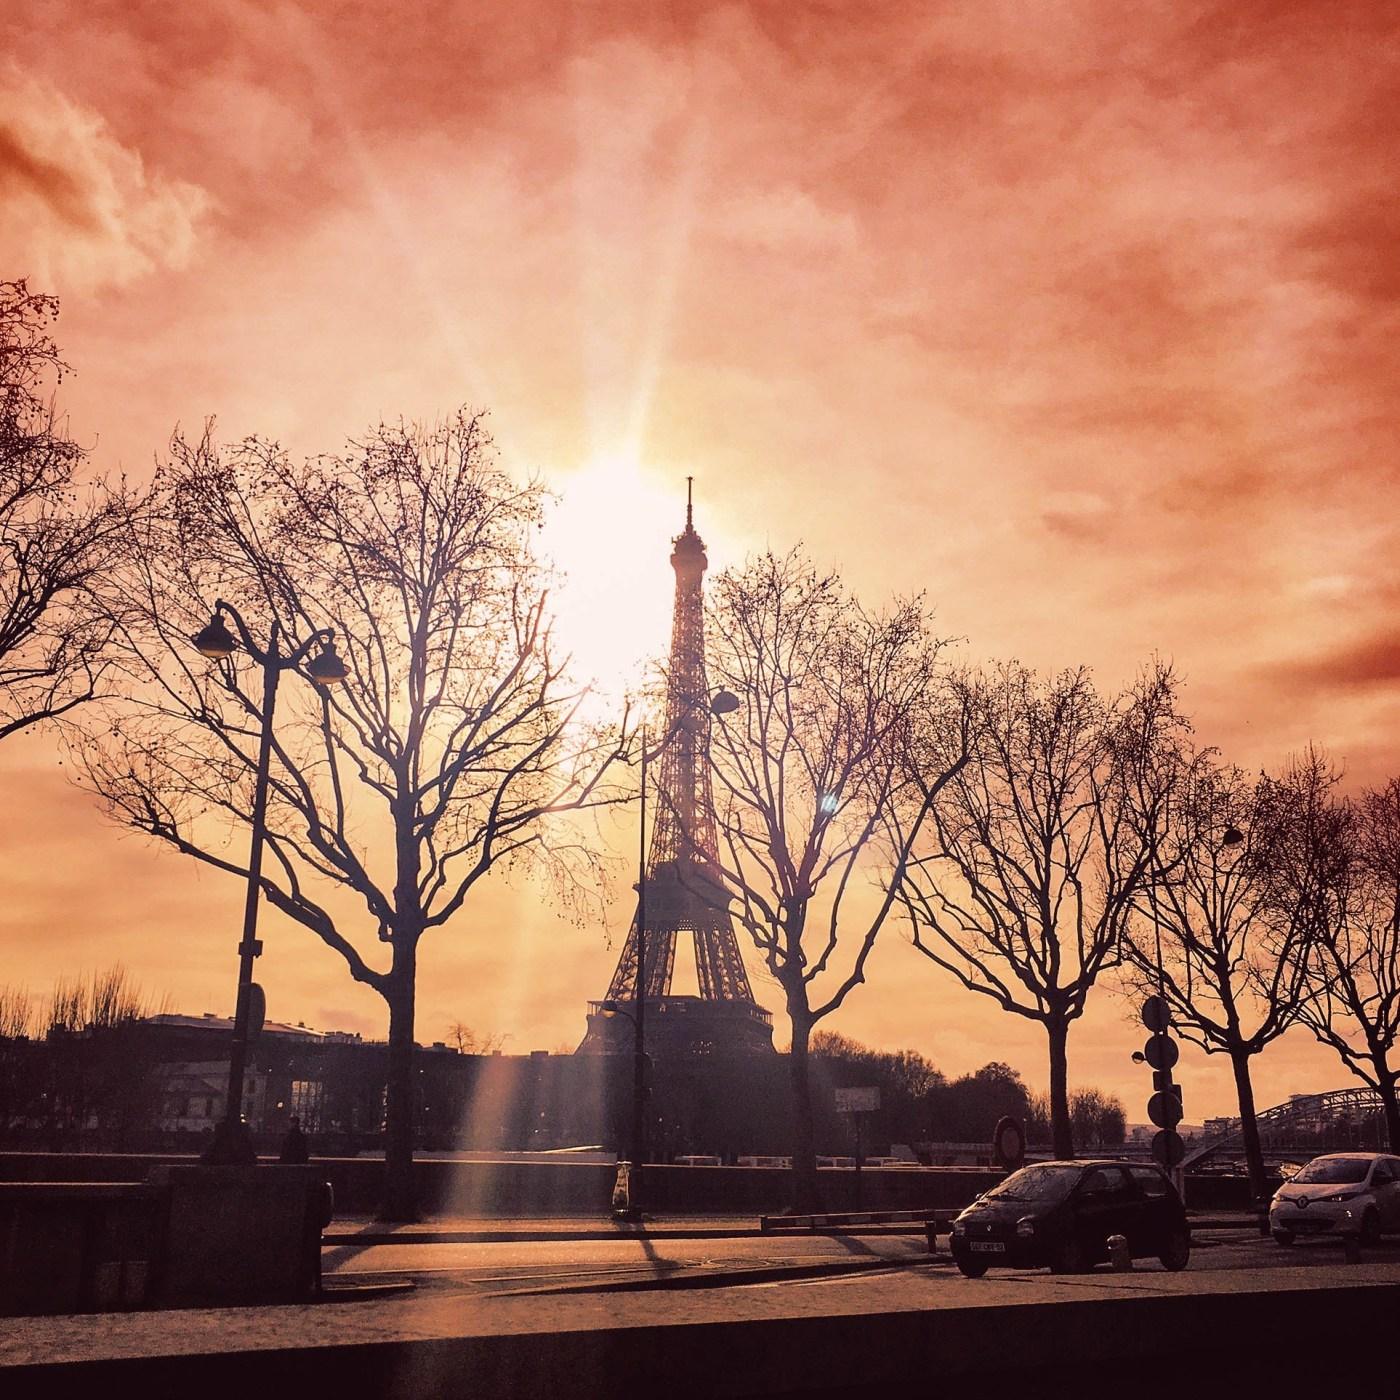 sunset-eiffel-tower-paris